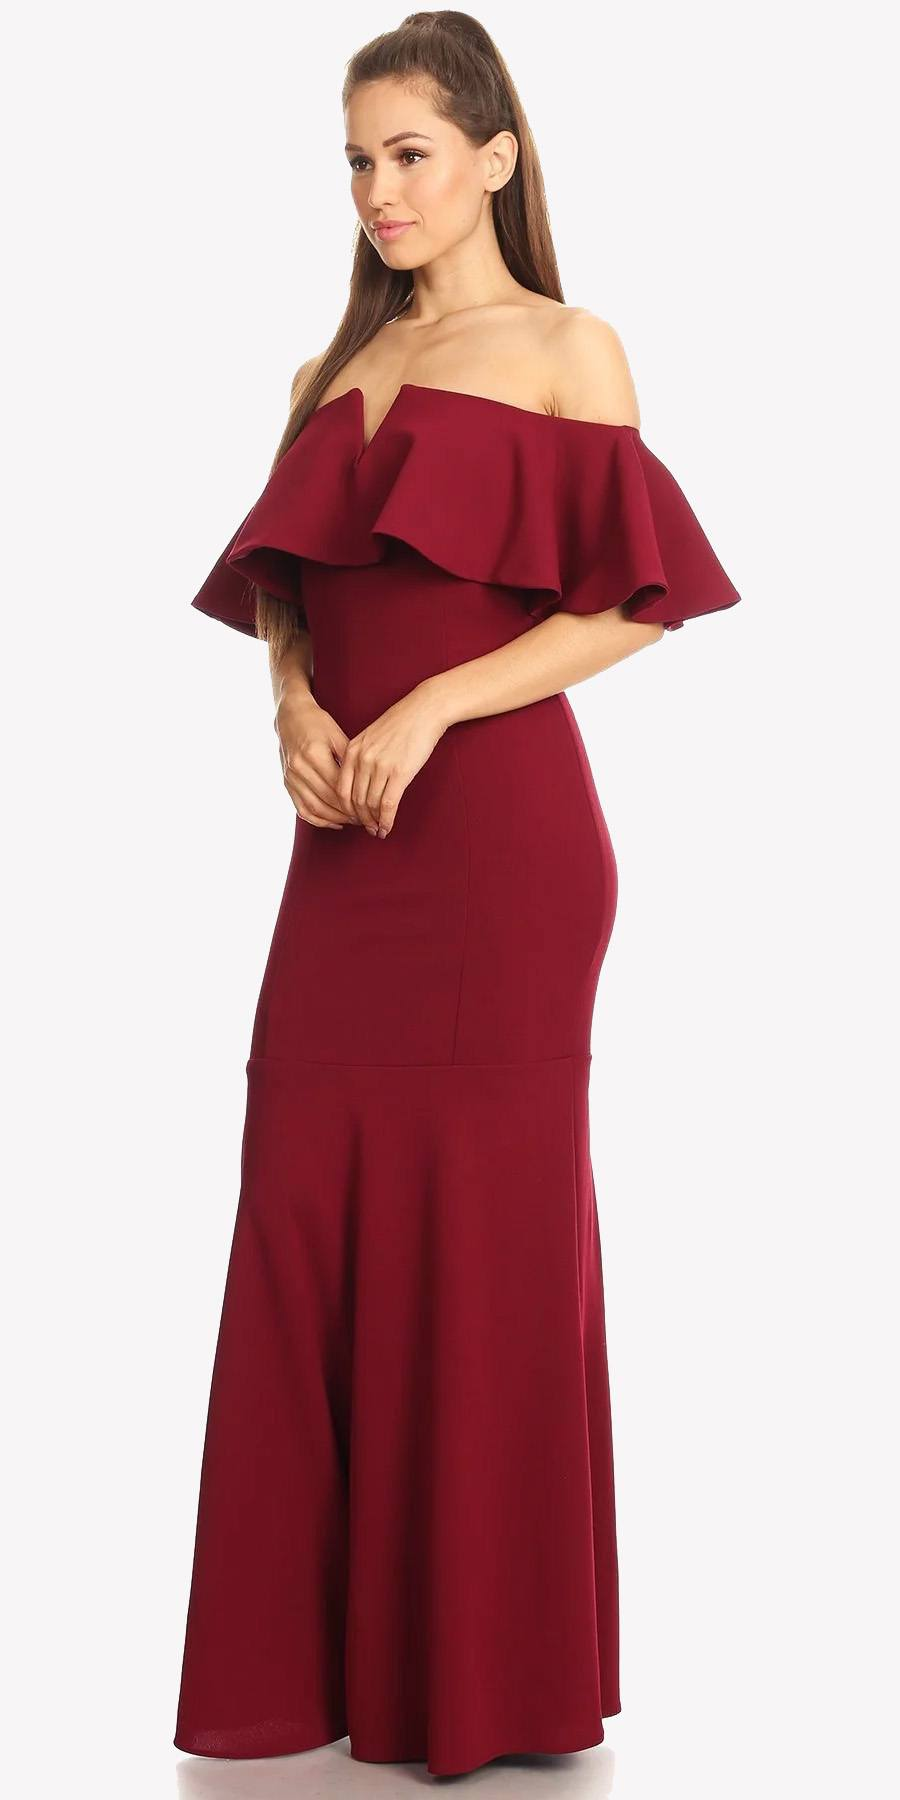 Long Formal Red Dress Off Shoulder With V Notch Ruffled Bodice